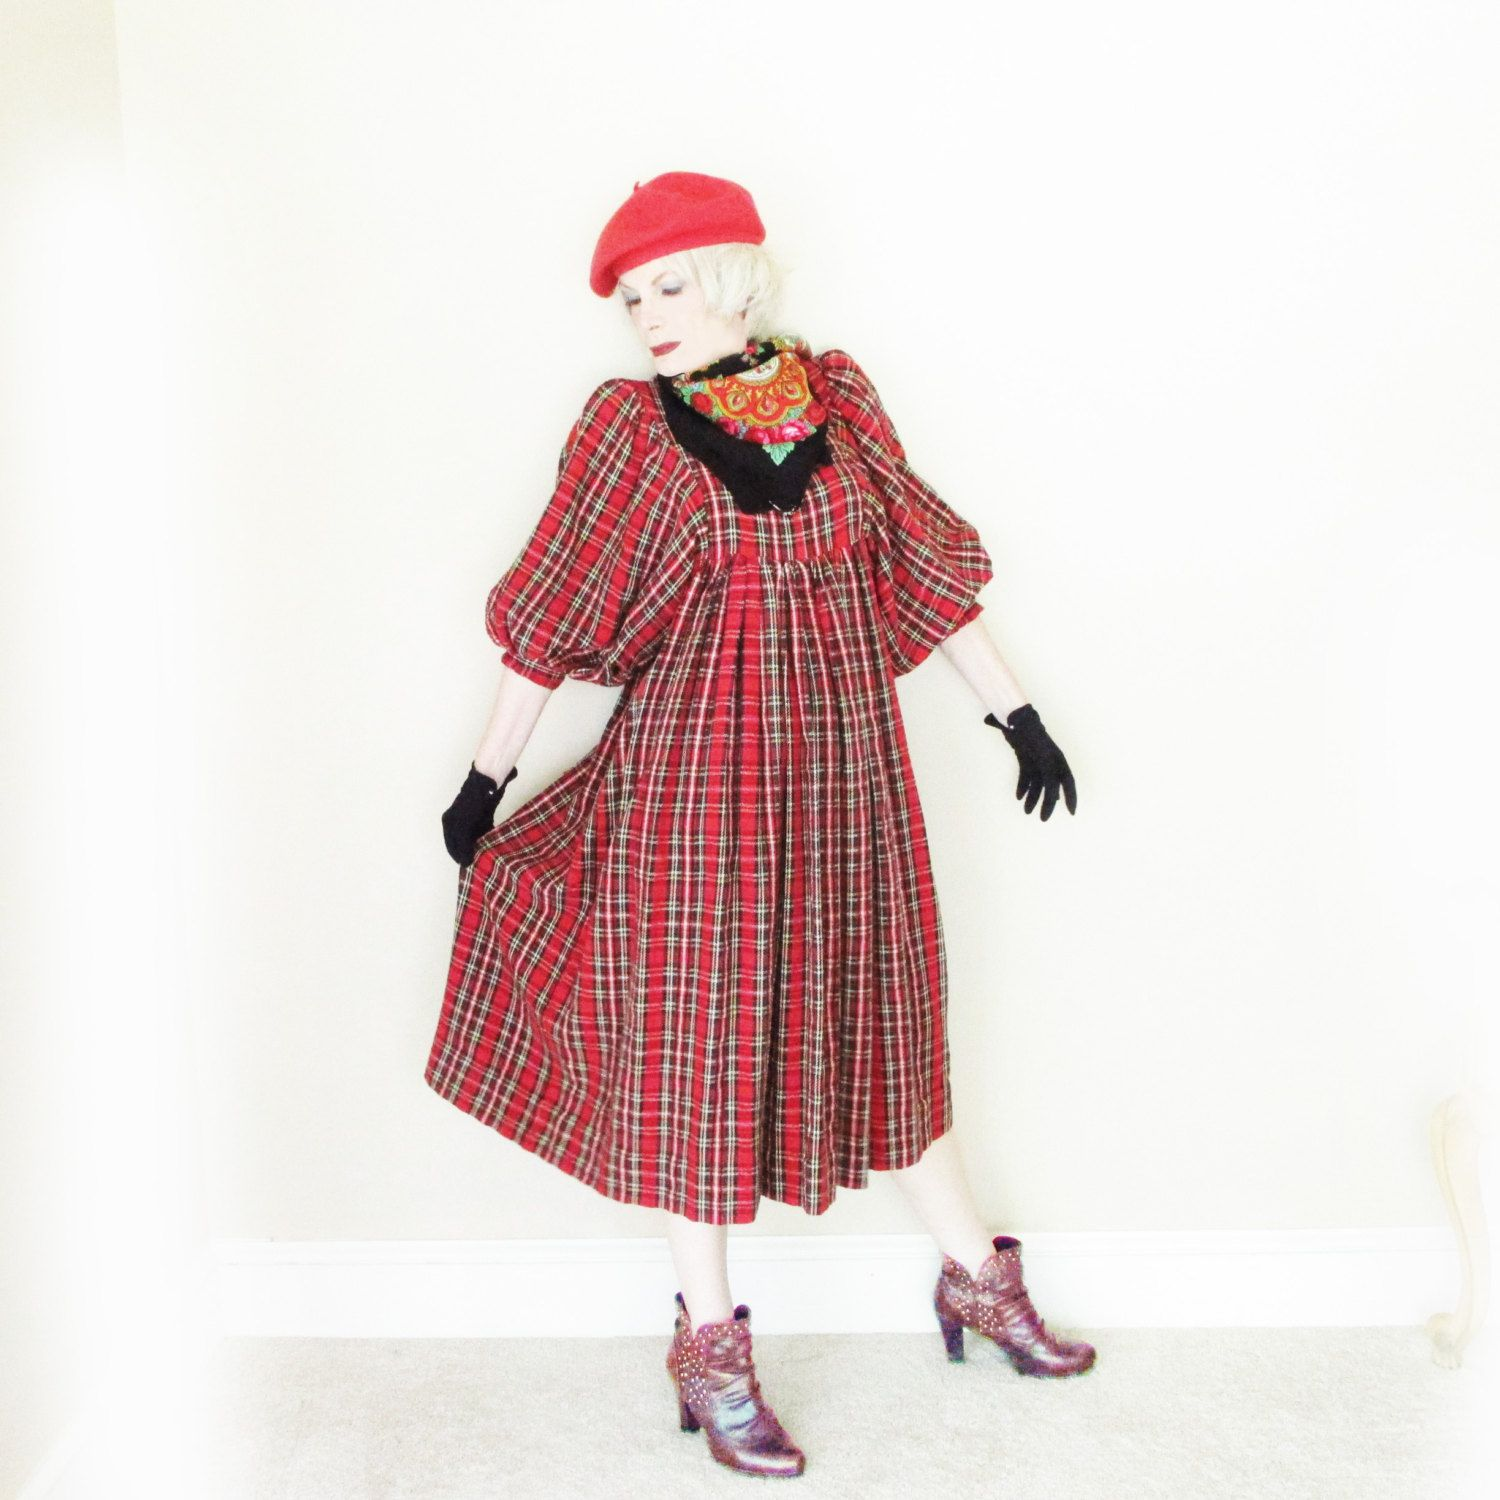 Vintage Loose Plaid Midi Dress - 1960s Casual Red Plaid for Fall & Holidays - Vintage Maternity by LunaJunctionVintage on Etsy